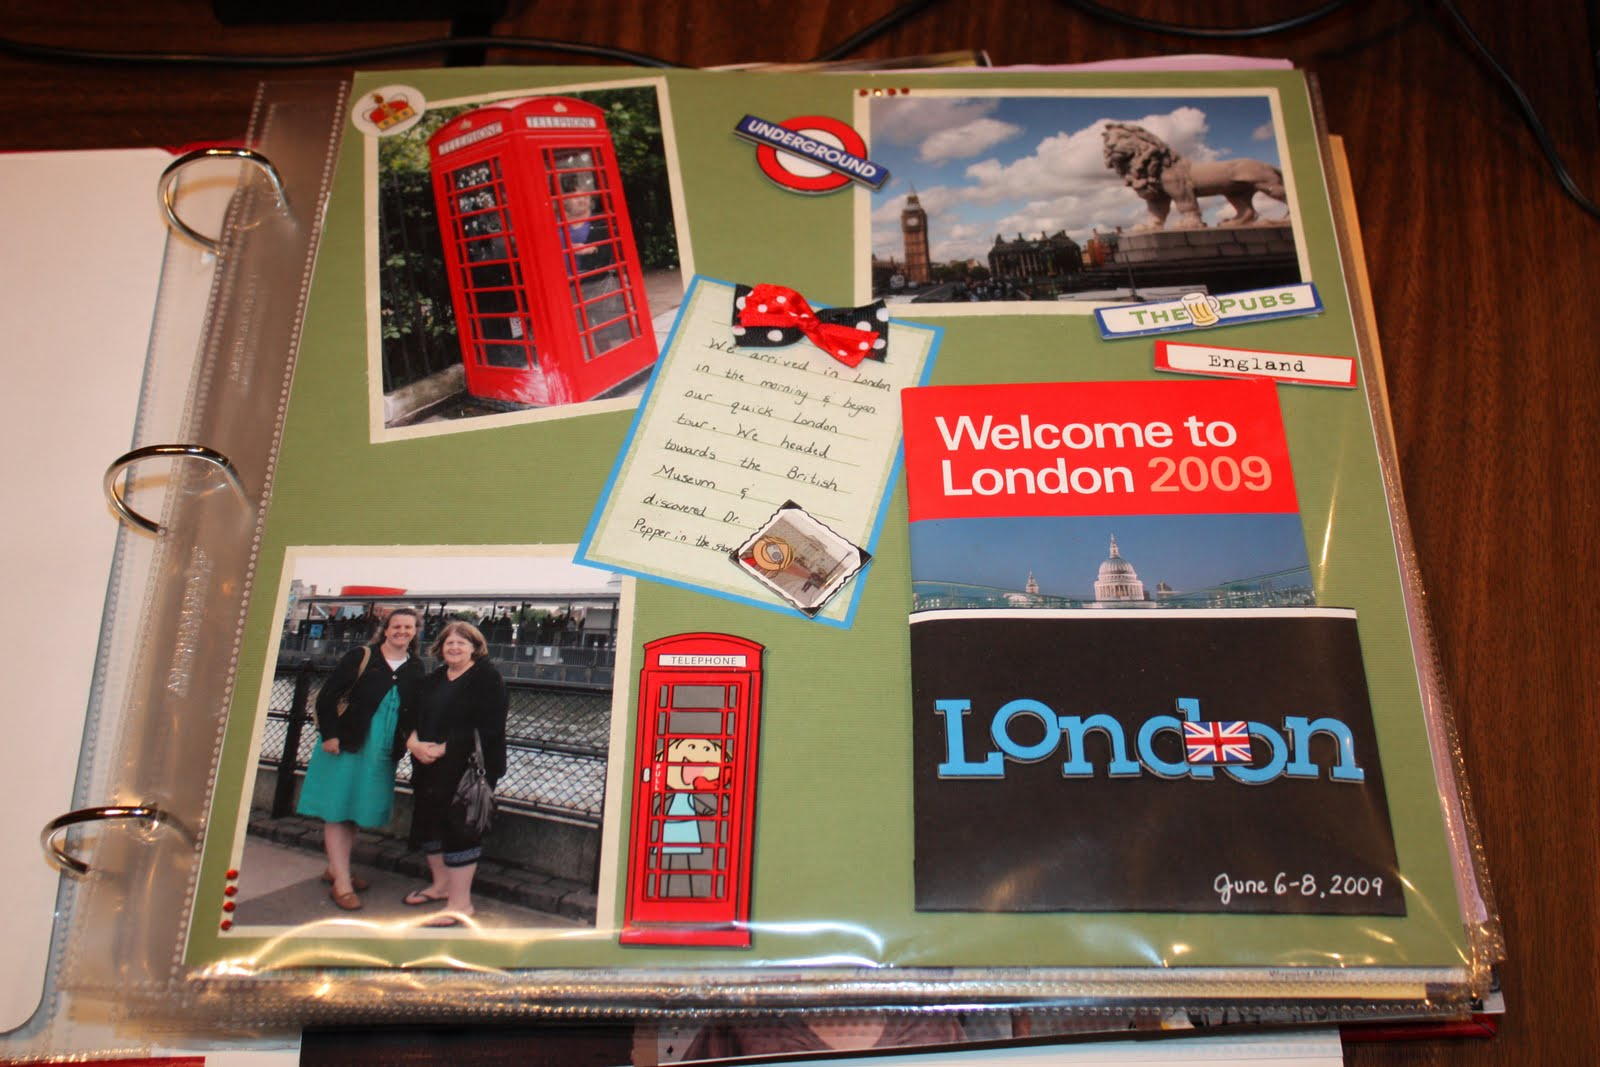 Scrapbook paper england - I Love Making Little Paper Pockets To Store Brochures Etc I Sometimes Ave When On Vacation Depending On How Much Of A Pack Rat I M Feeling Like At The